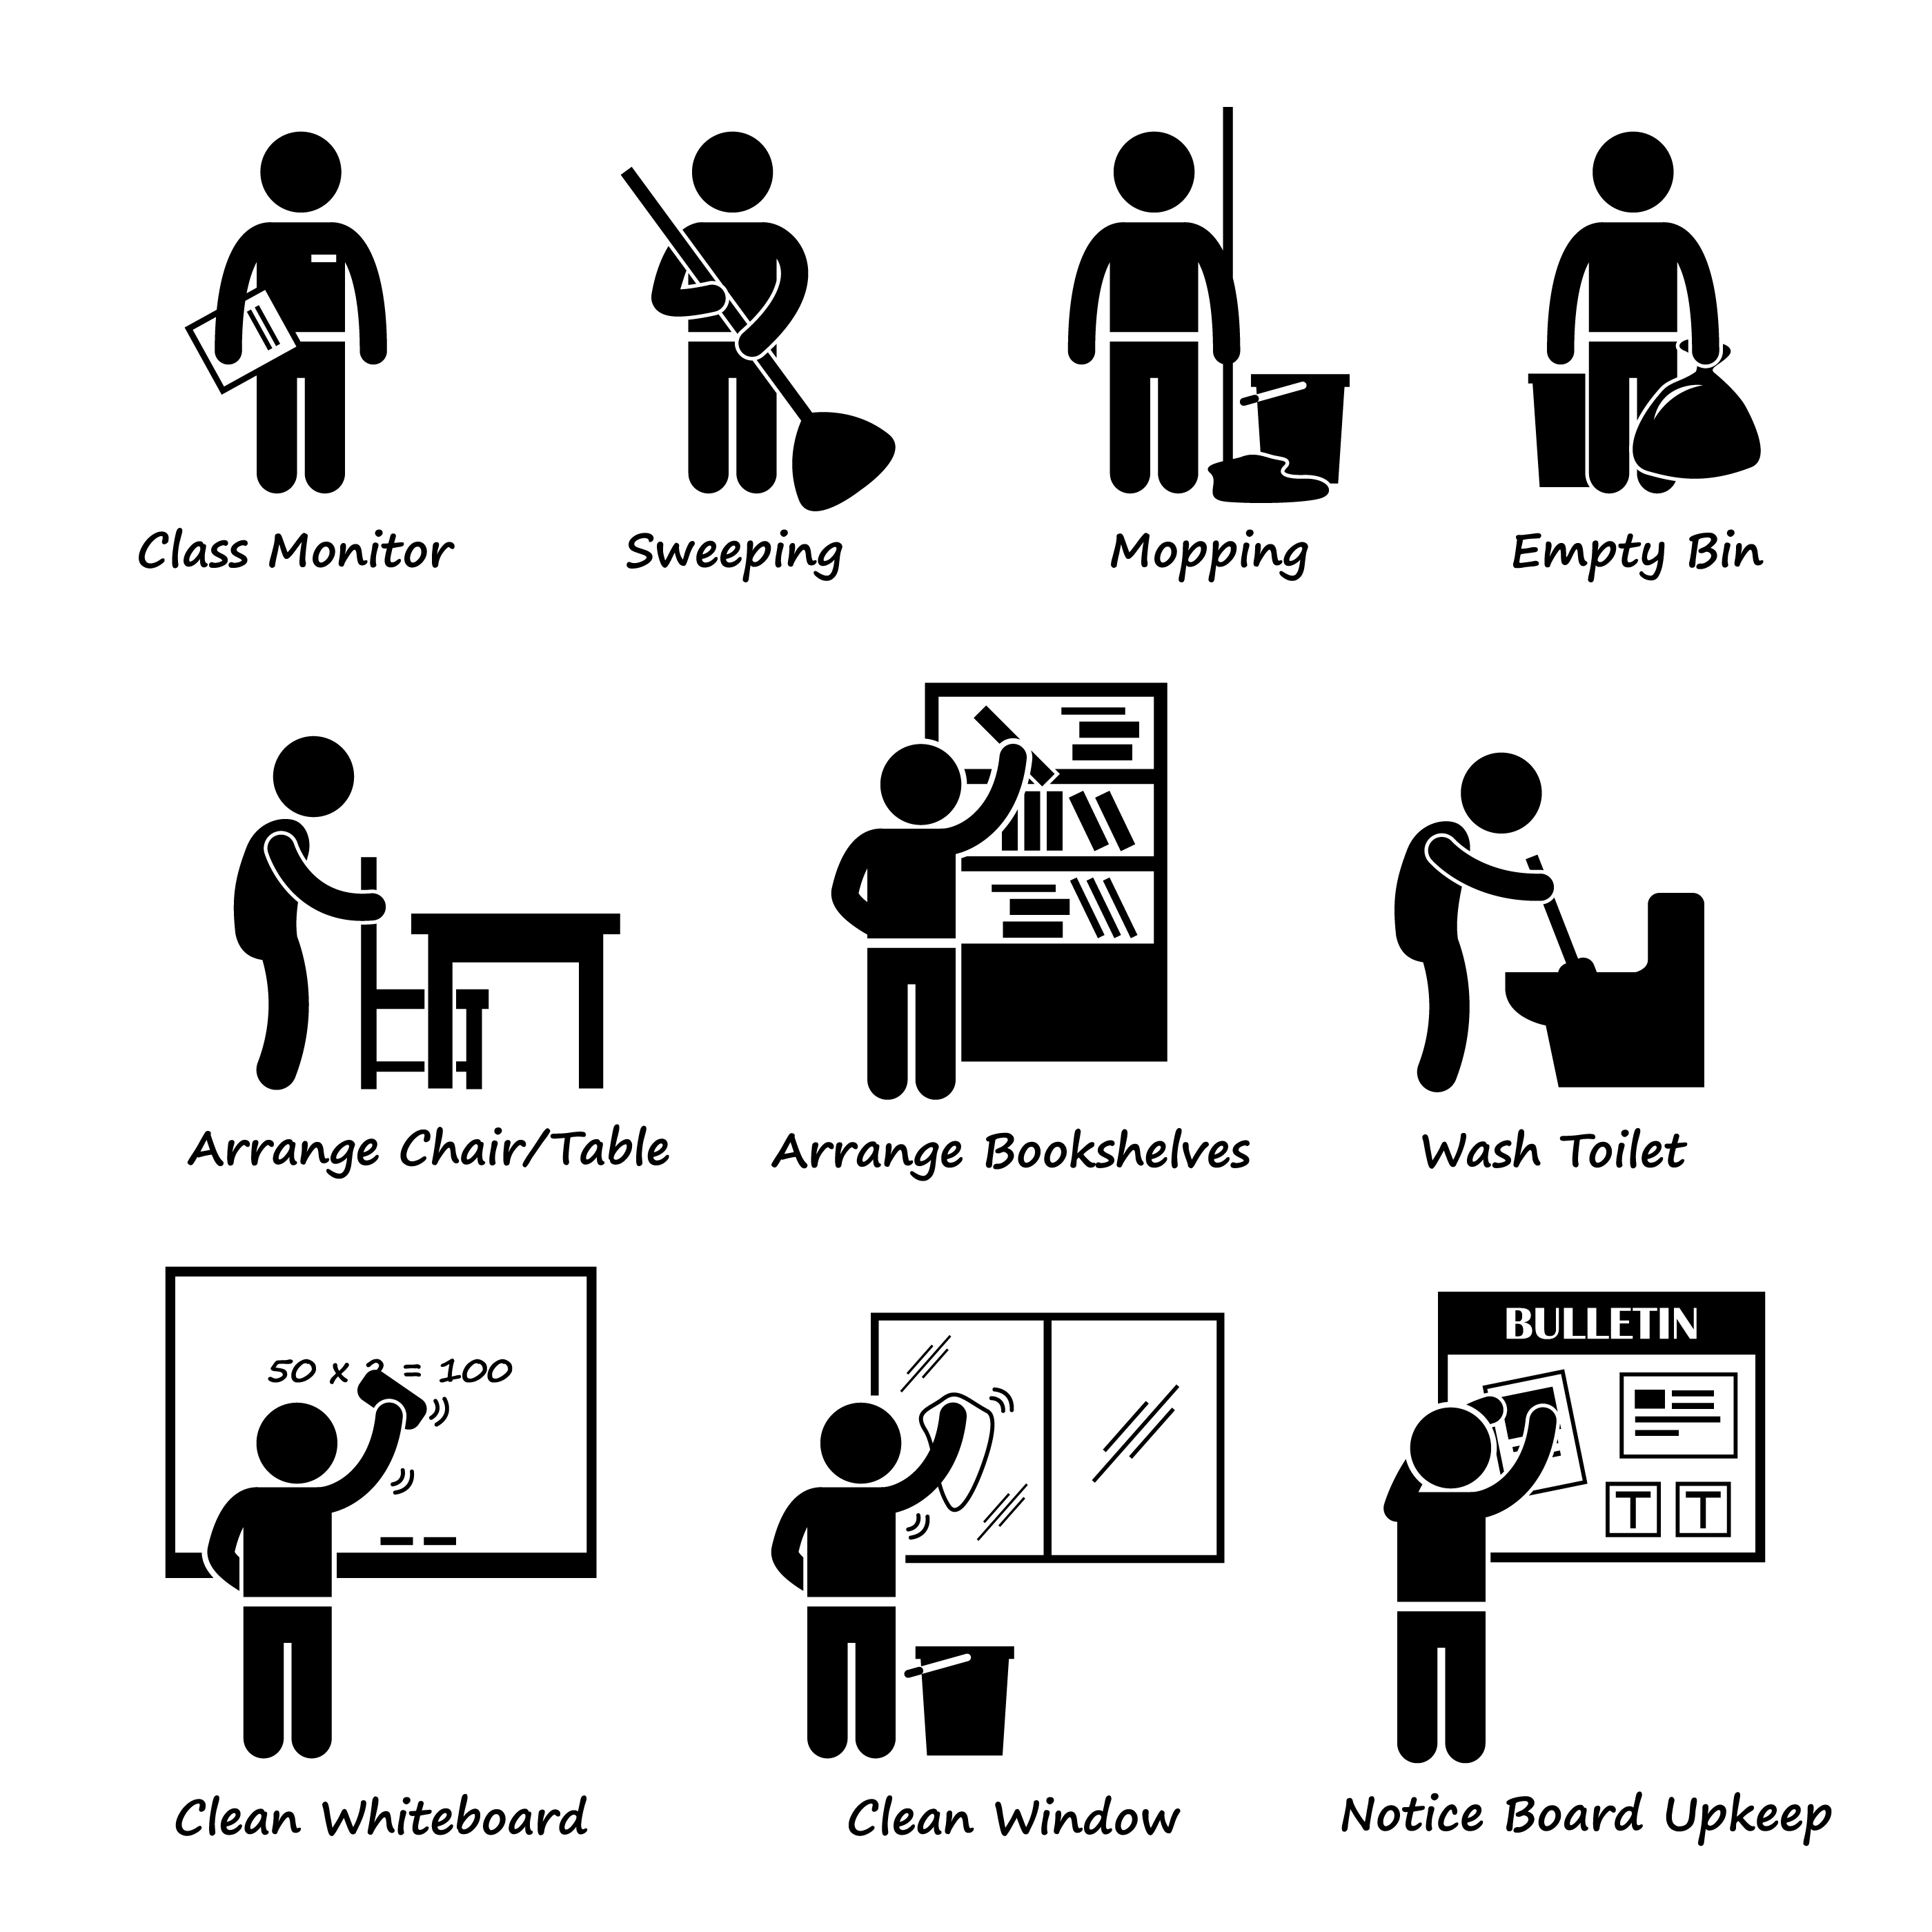 Classroom Student Duty Roster Stick Figure Pictogram Icon Clipart. A.